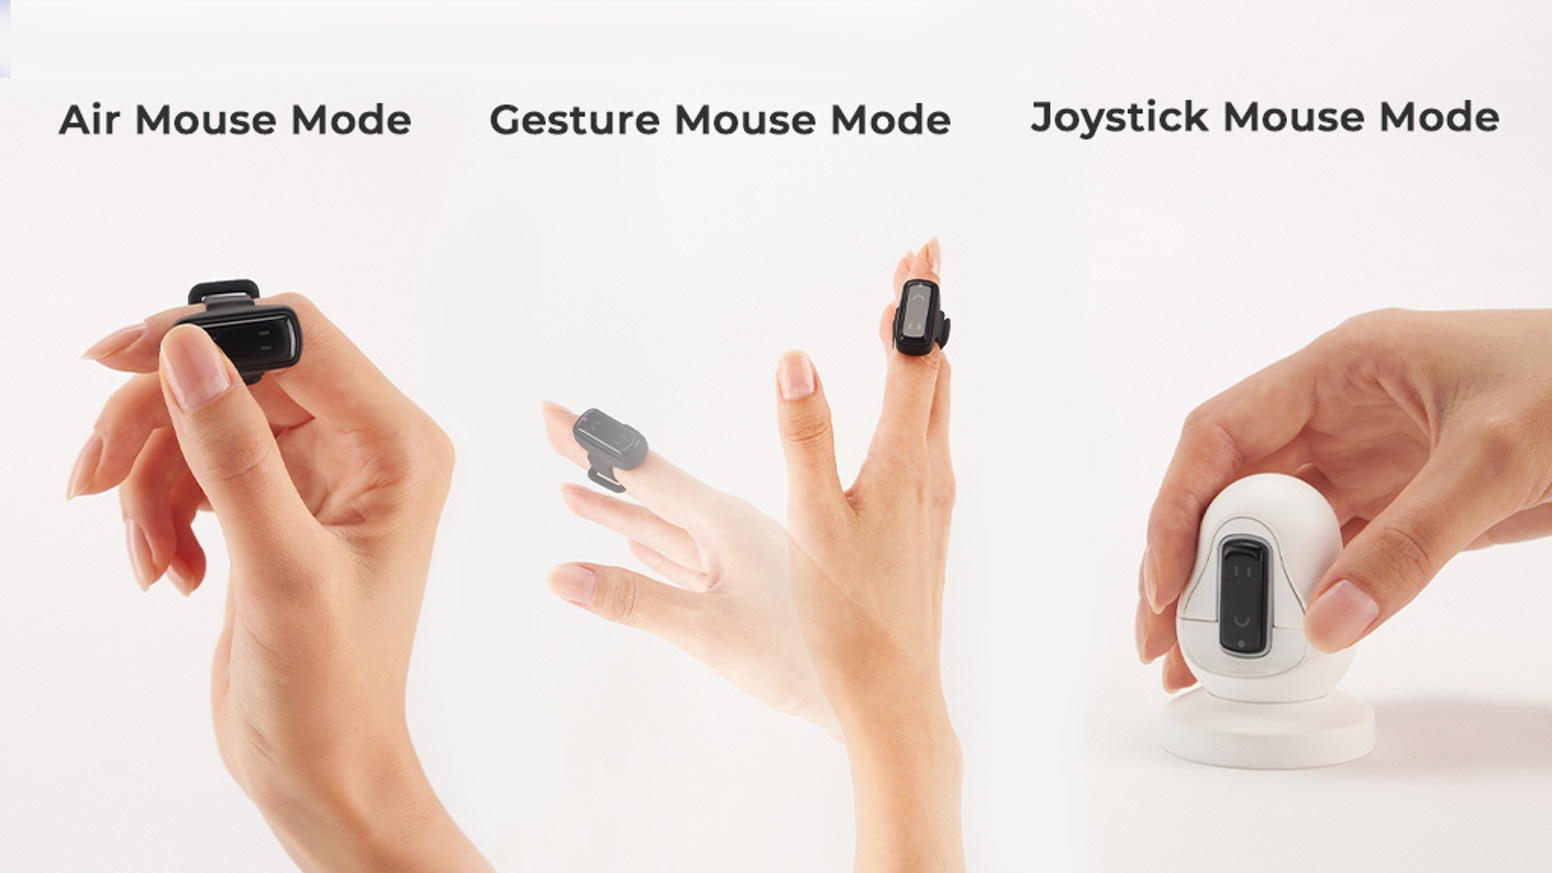 3 versatile modes with Bluetooth, Gesture Machine Learning & 9DoF for intuitive gesture control over your devices with minimal latency!